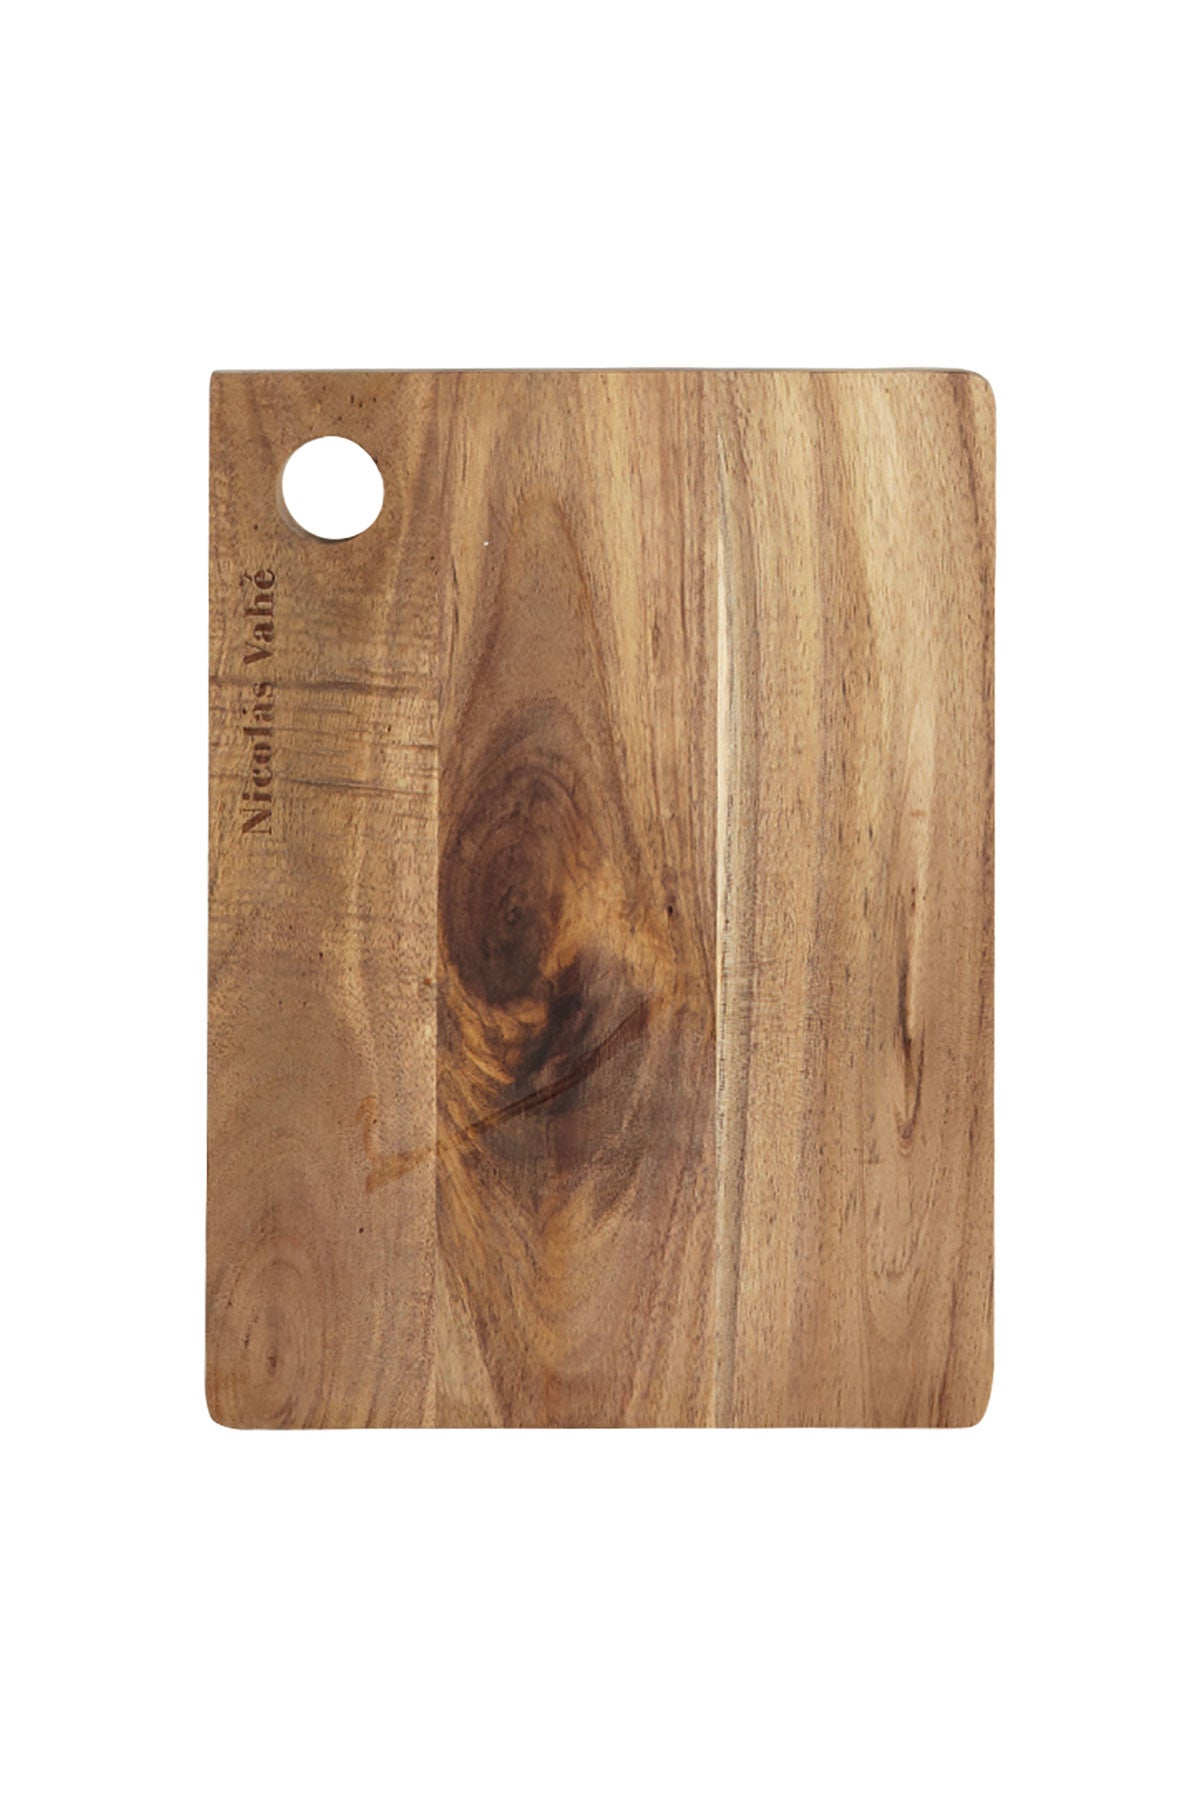 Accacia Serving Board, Serveware, Nicolas Vahé - 3LittlePicks